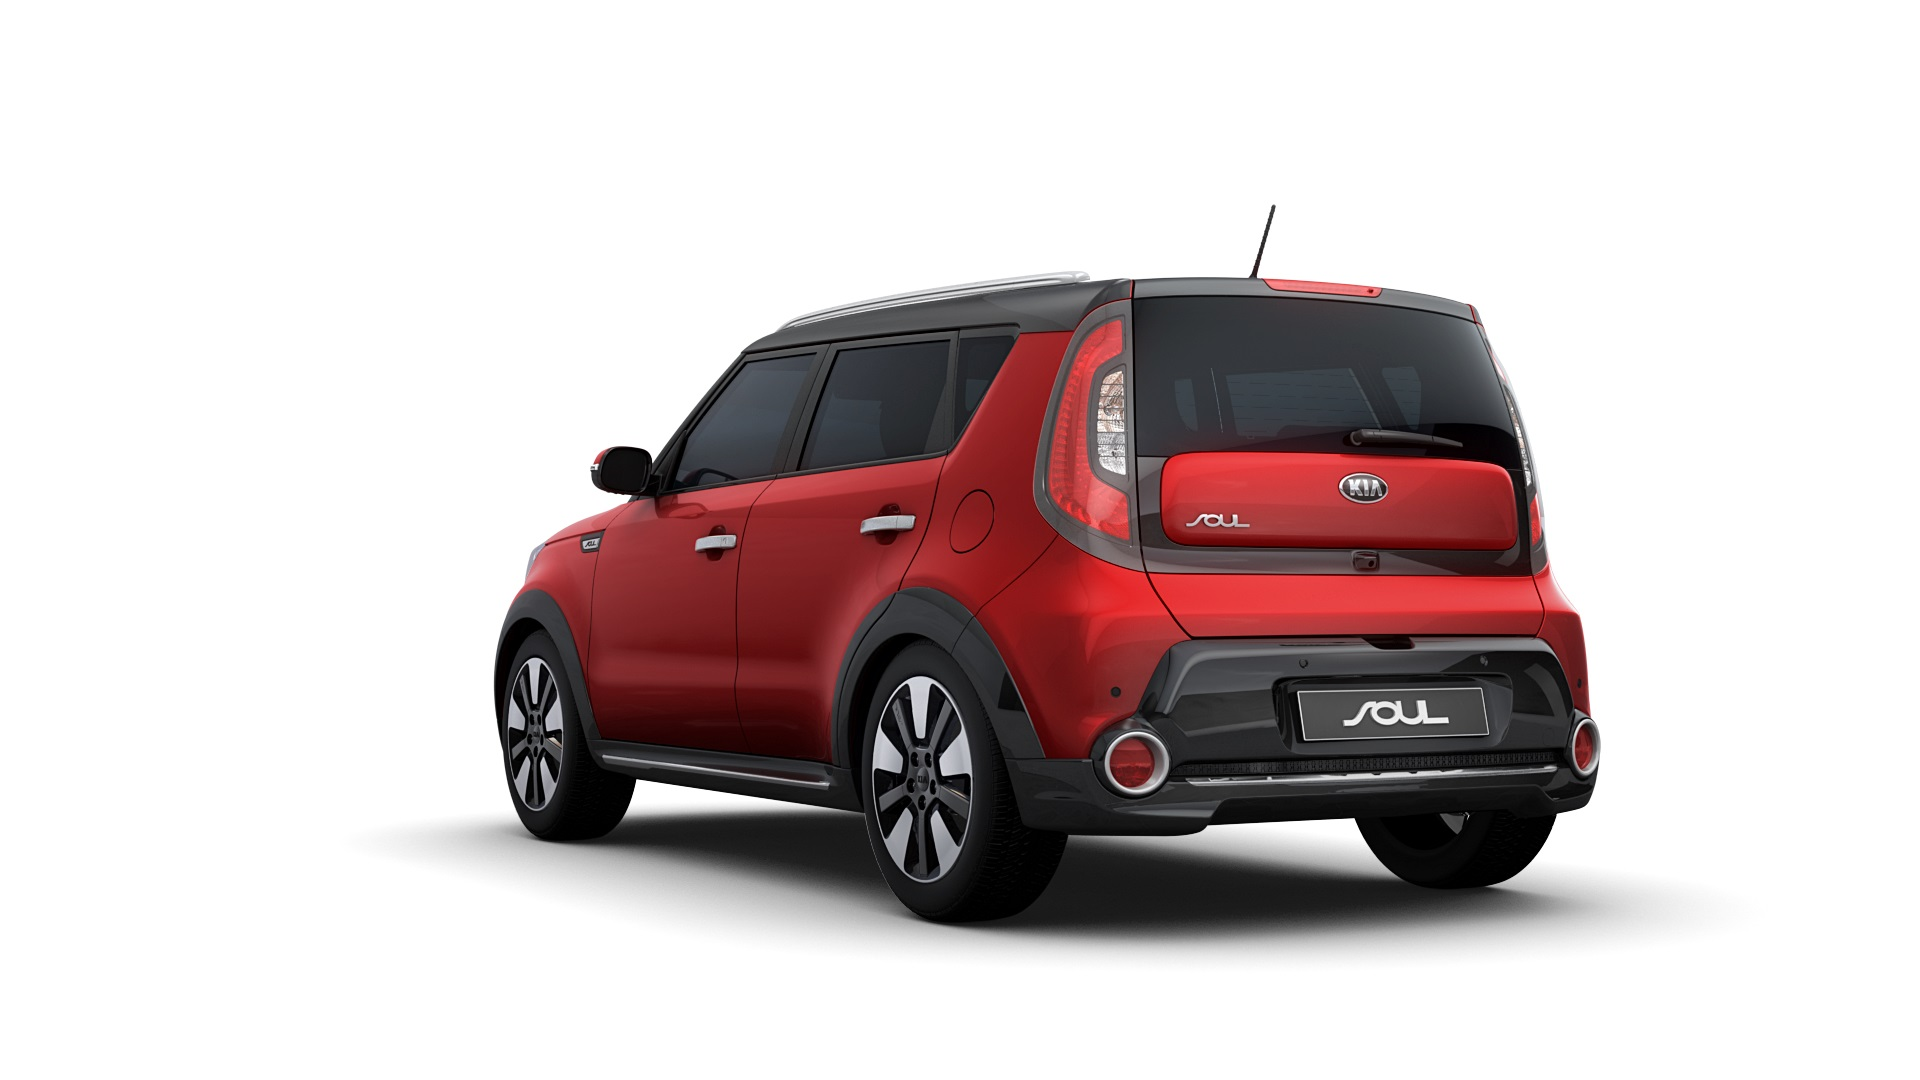 kv of cars futuristic uk parked hero kia new motors soul front a ev car w city in small electric home